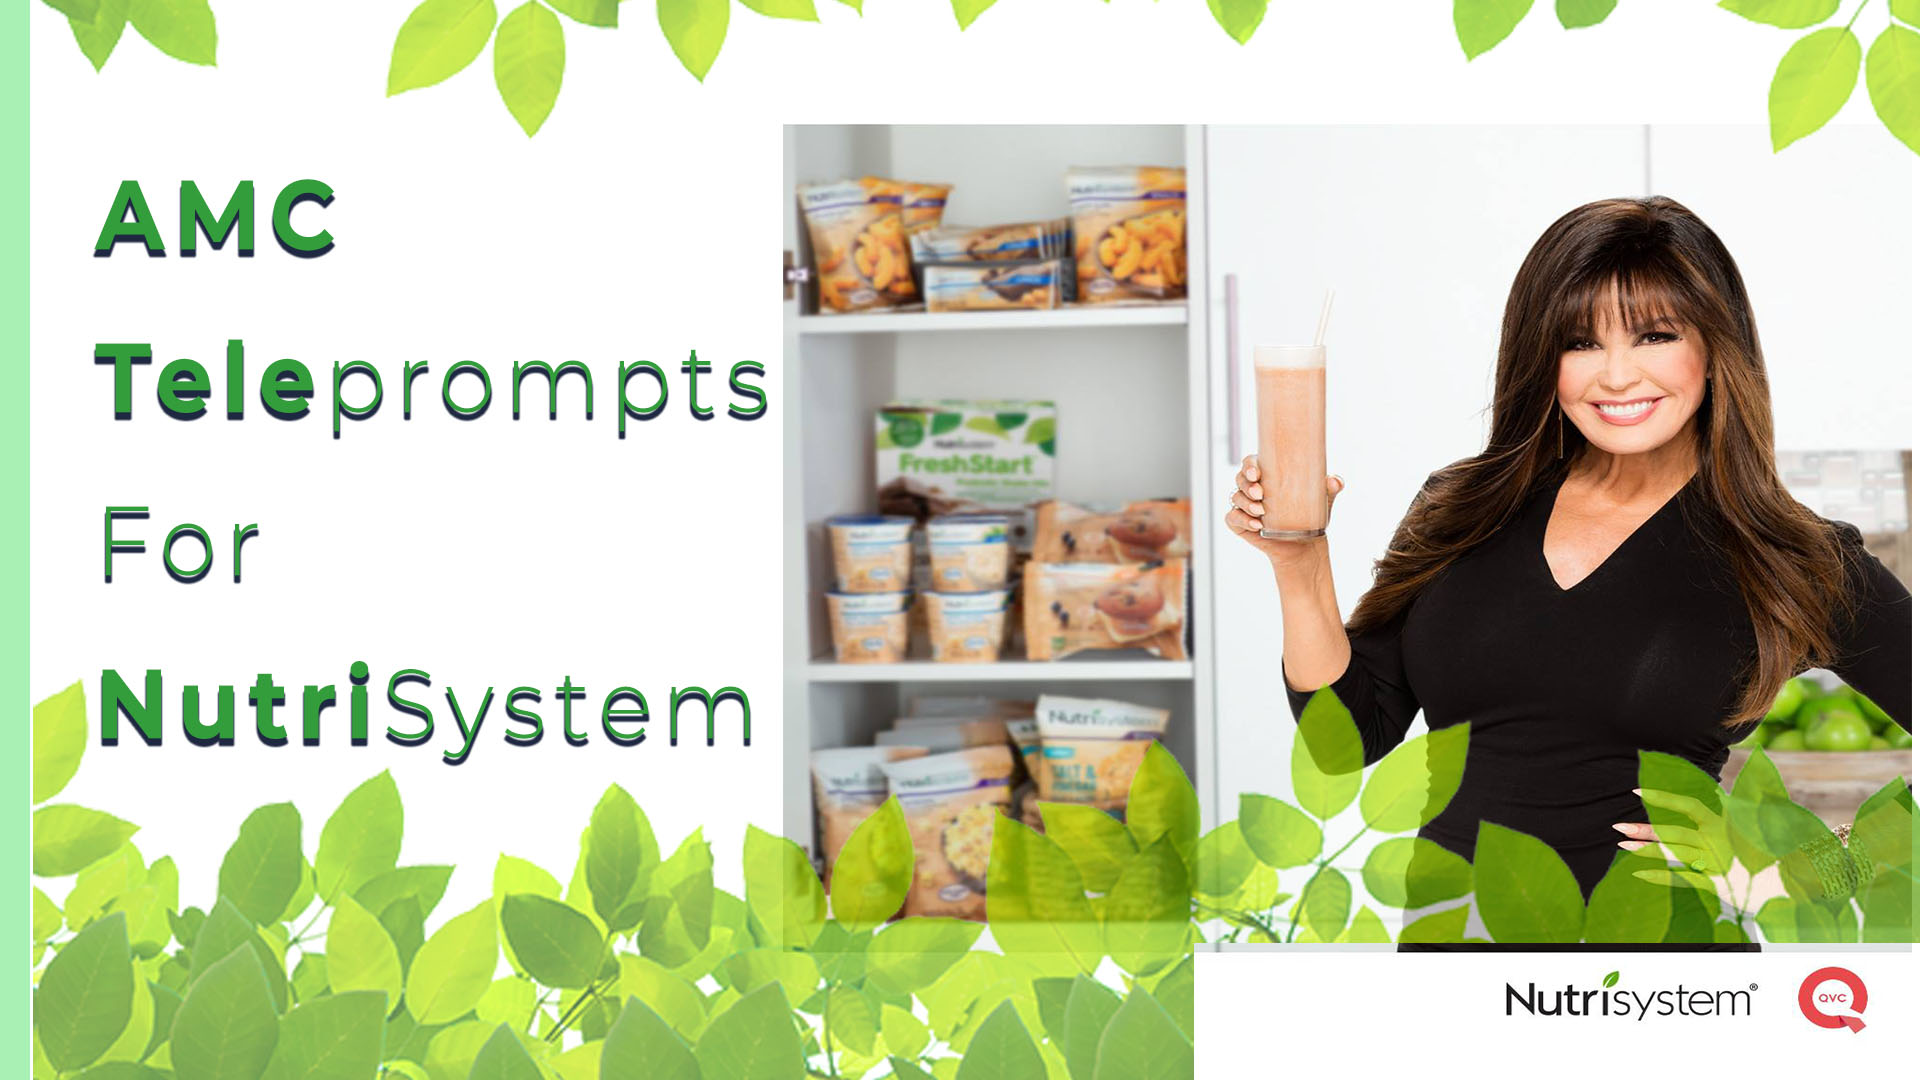 Marie Osmond holding glass - foliage, AMC Teleprompts for Nutrisystem